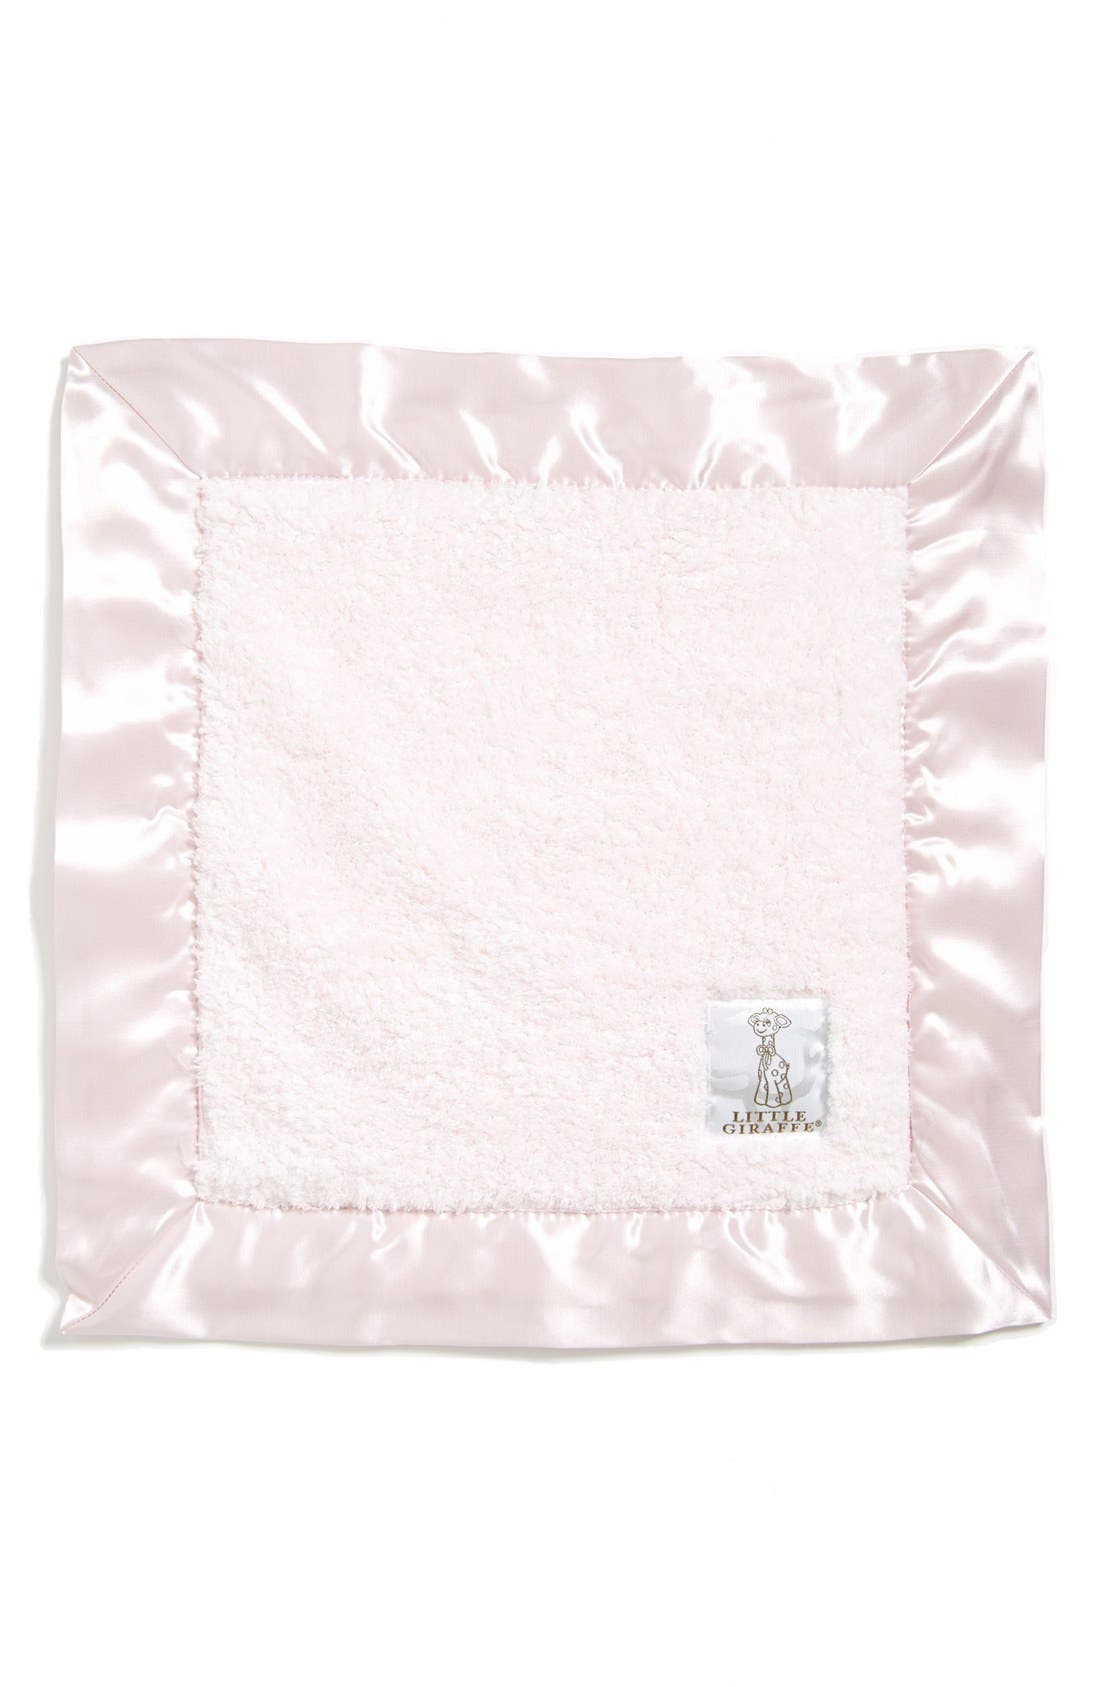 Satin Trim Chenille Blanky, Main, color, LIGHT PINK